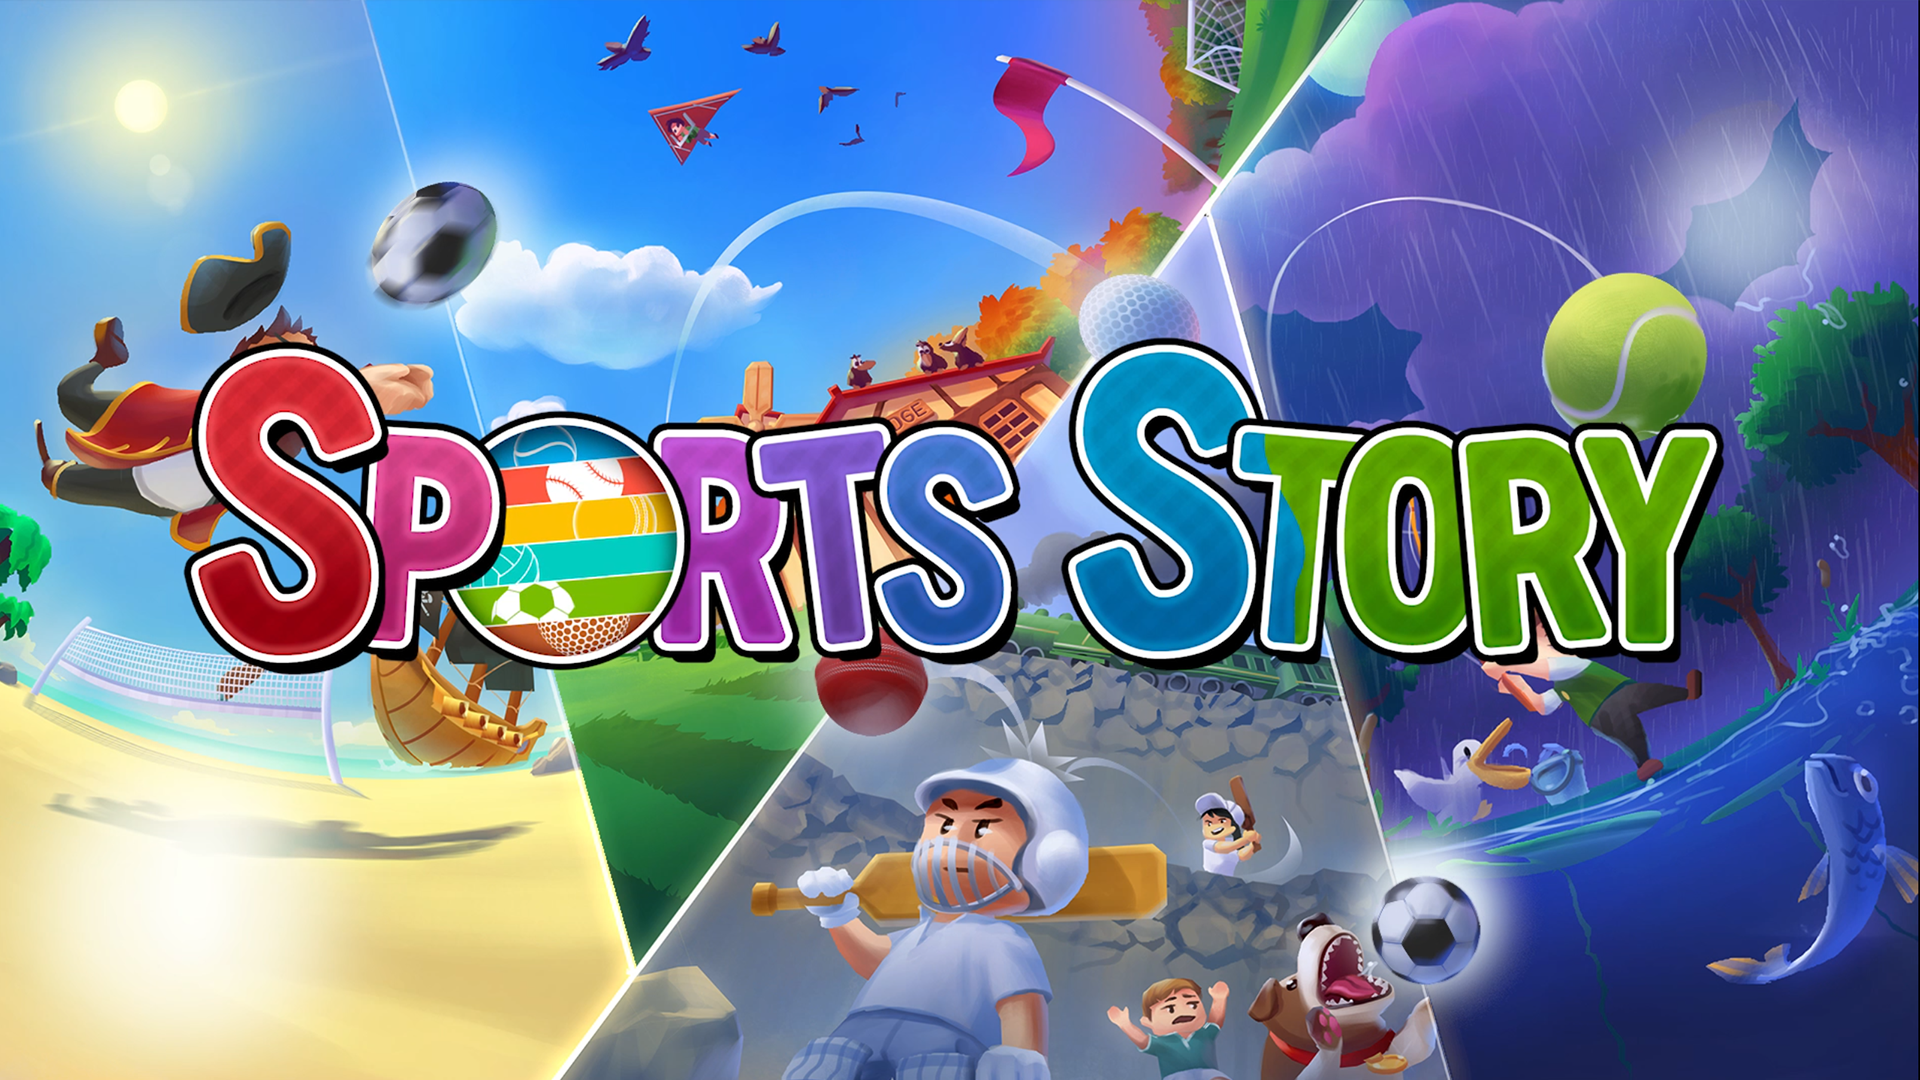 Sports Story is officially postponed